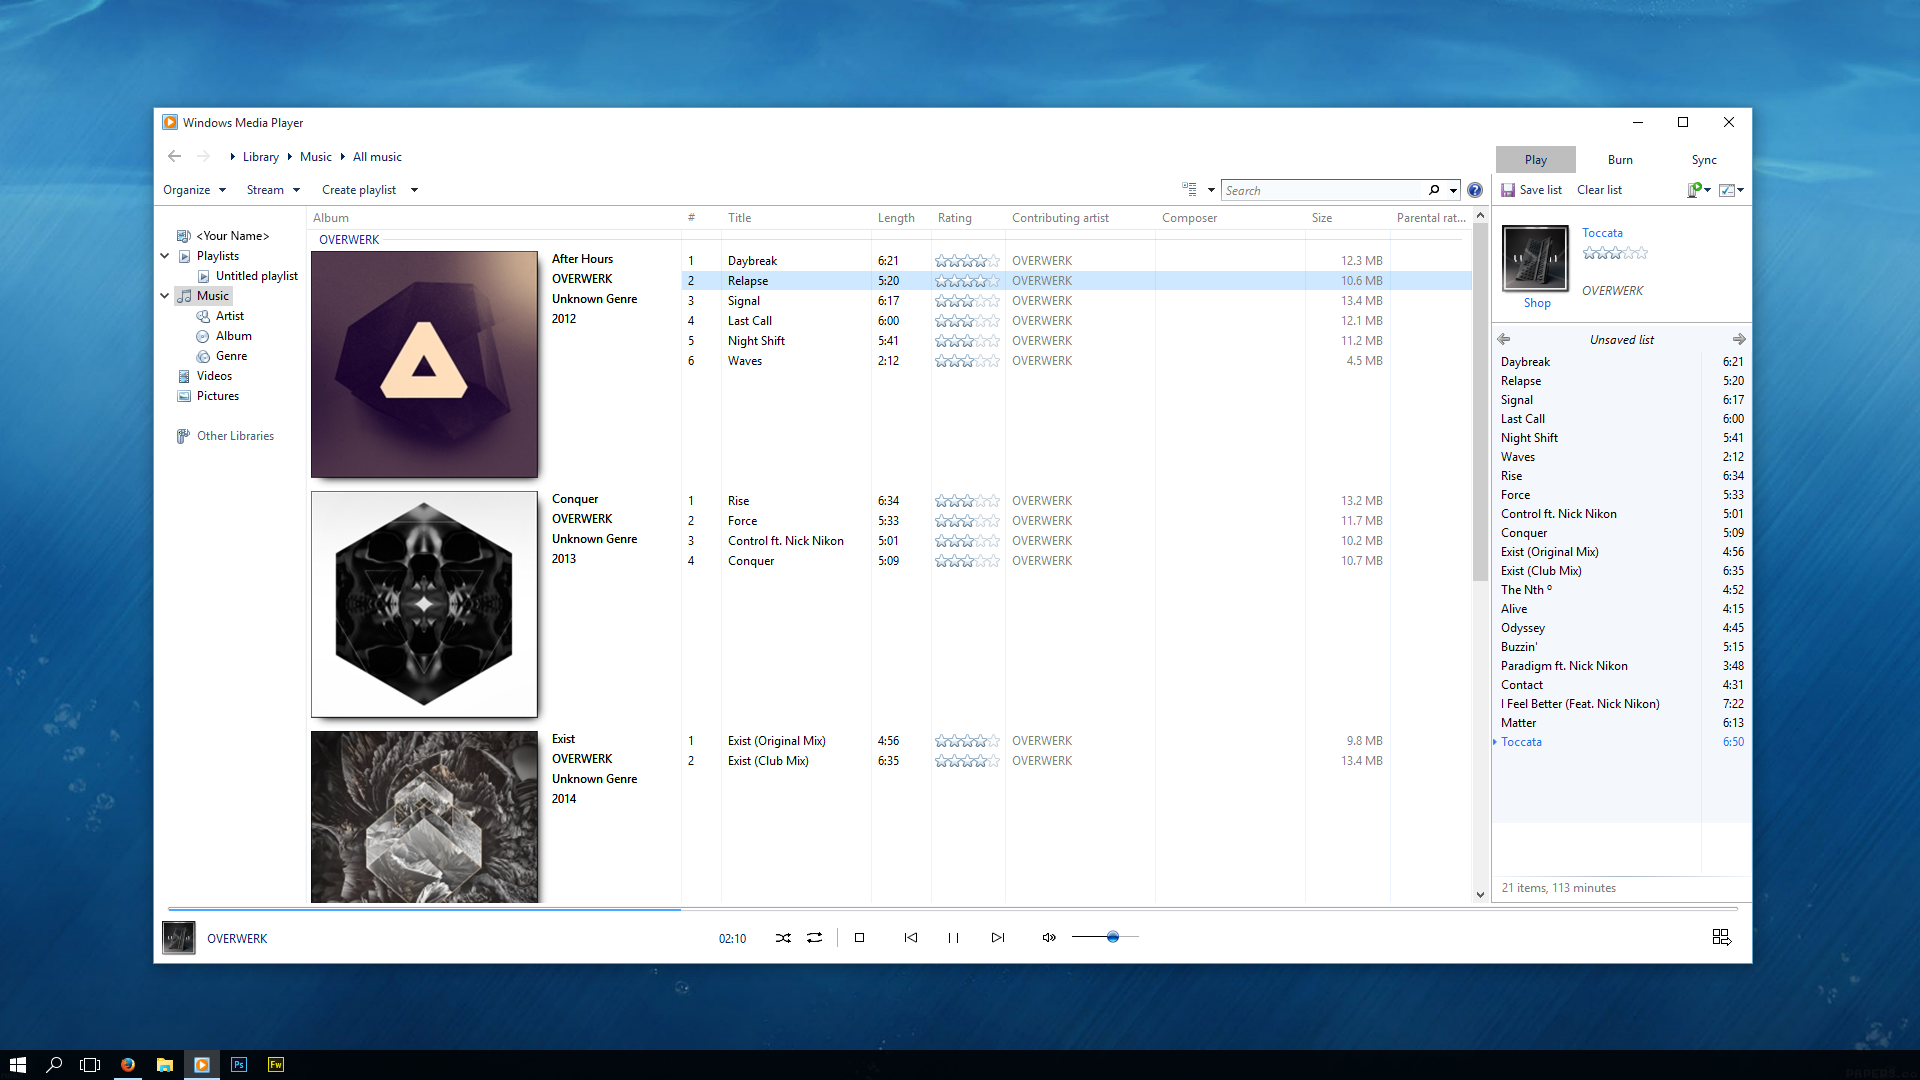 Windows Media Player For Windows 8.1 Free Download